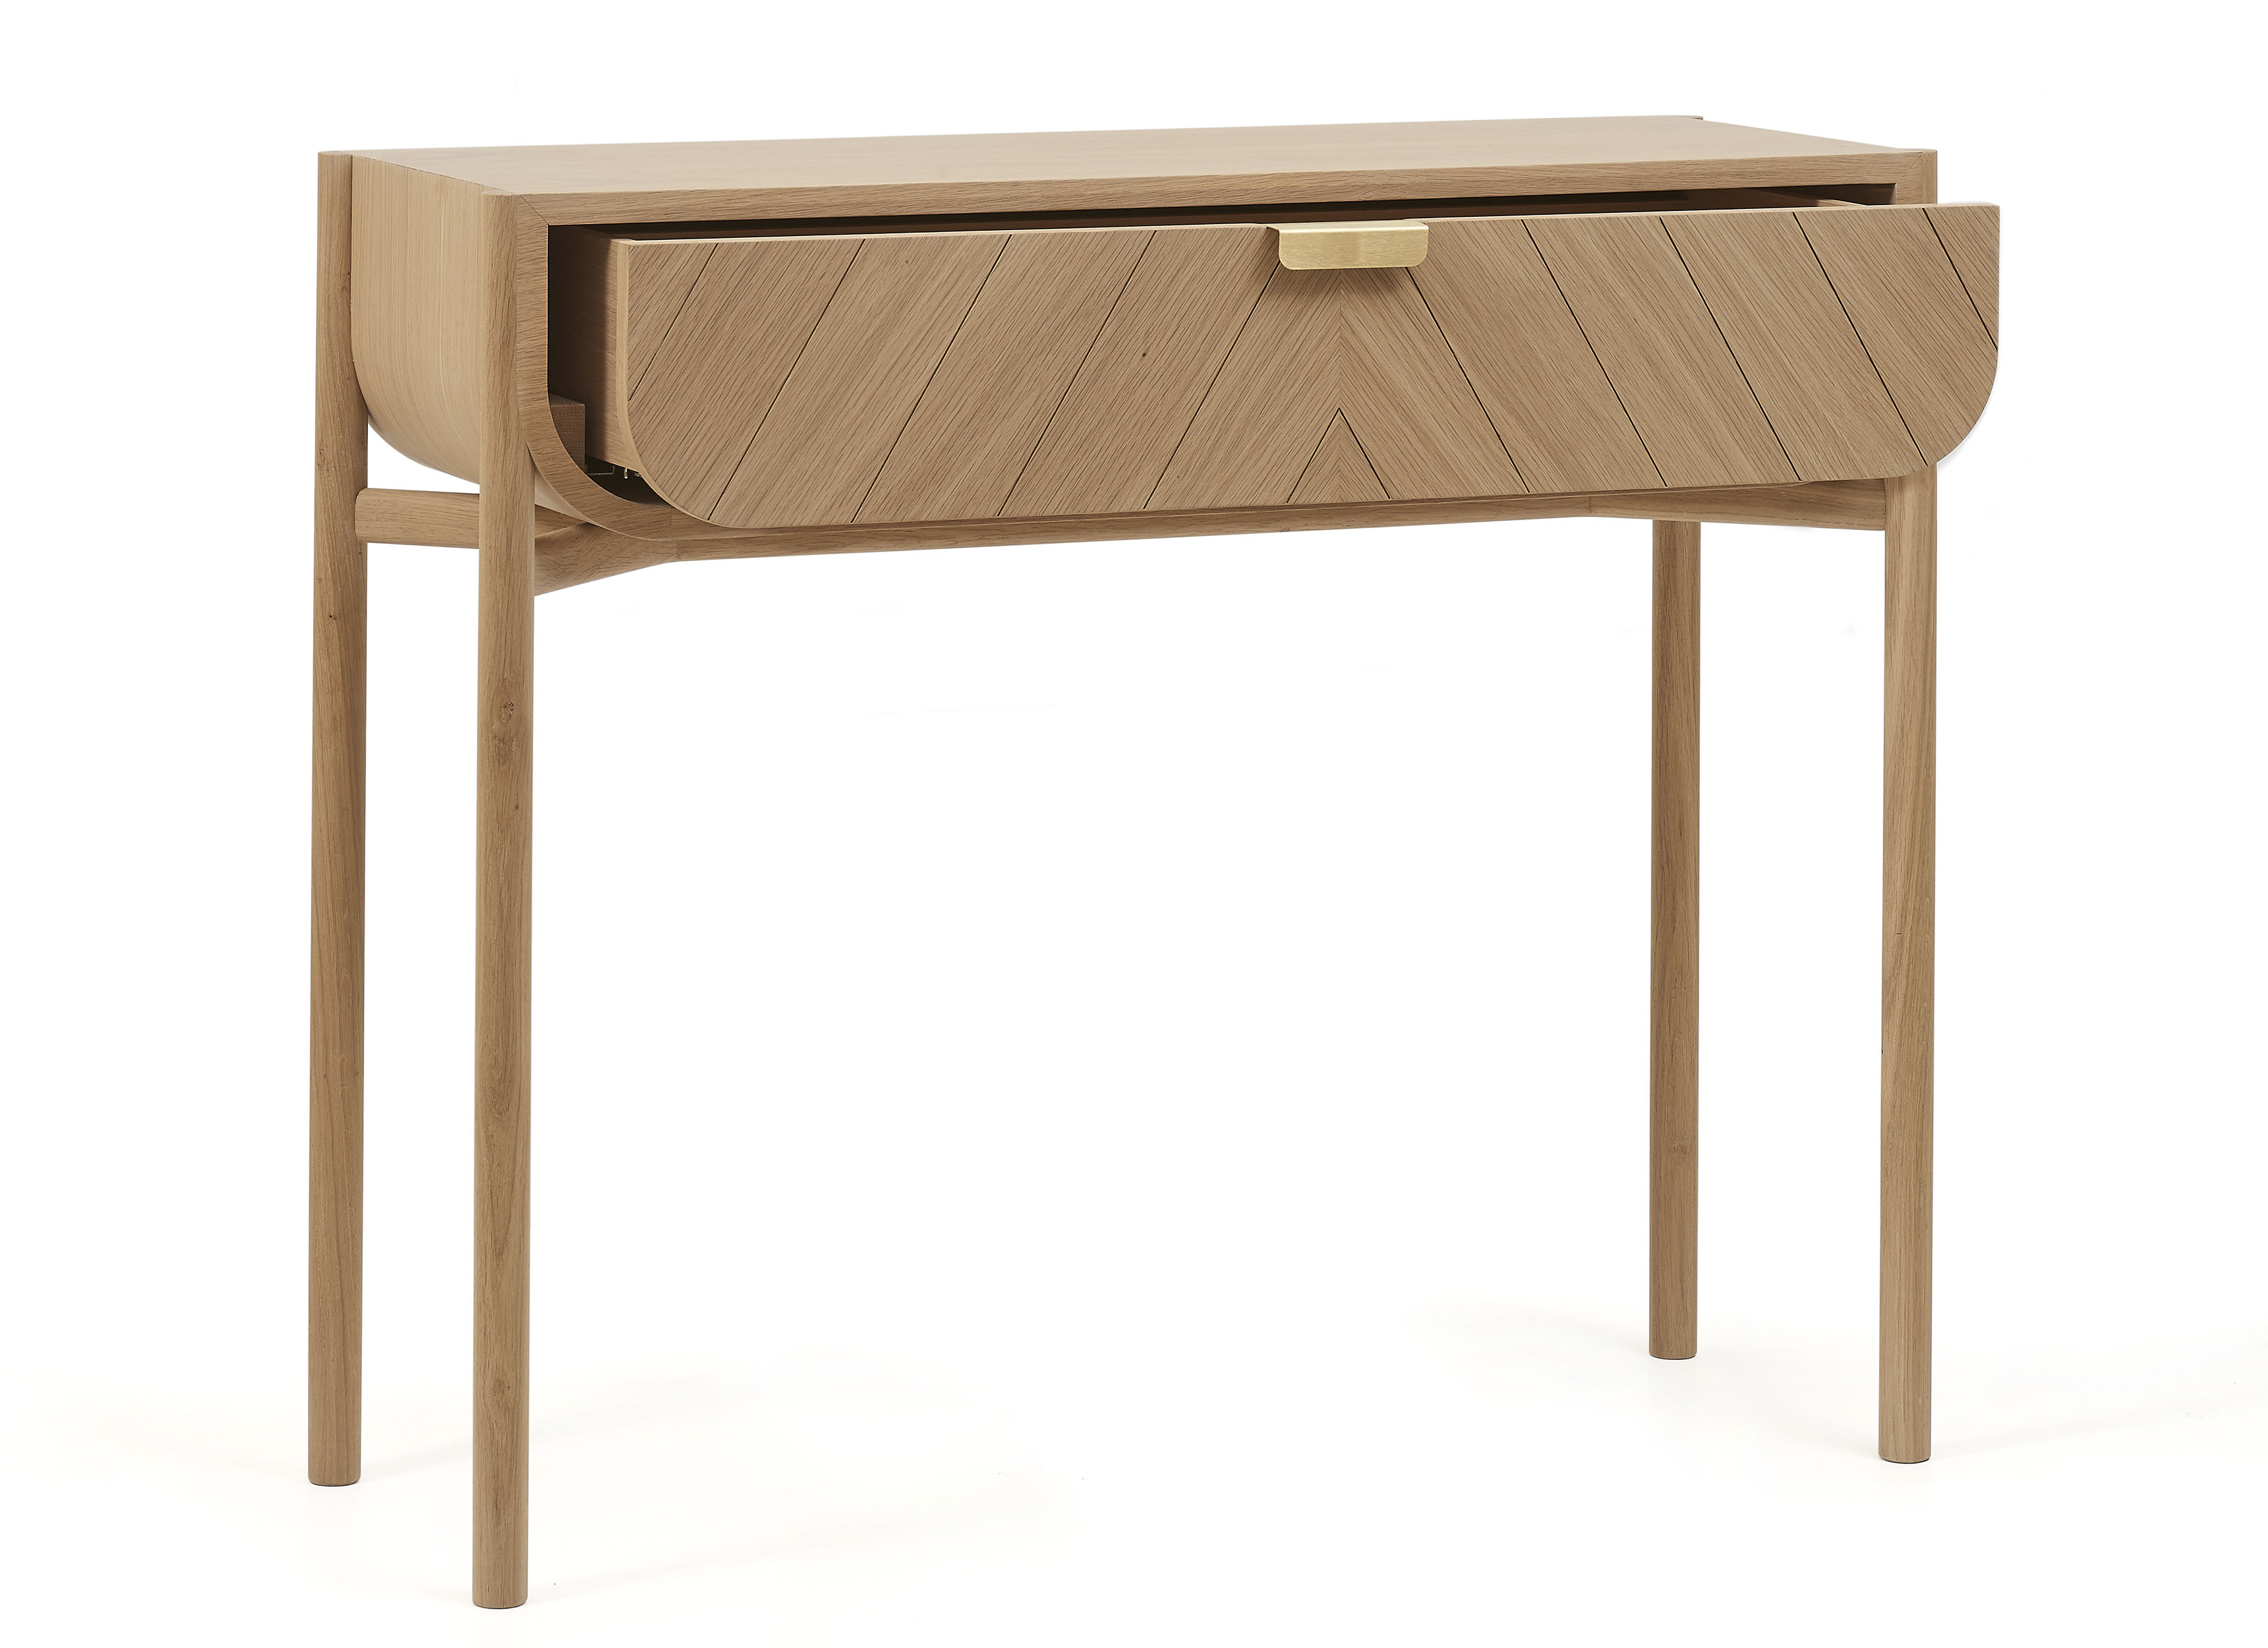 marius console with drawer l 100 cm natural oak by hart. Black Bedroom Furniture Sets. Home Design Ideas